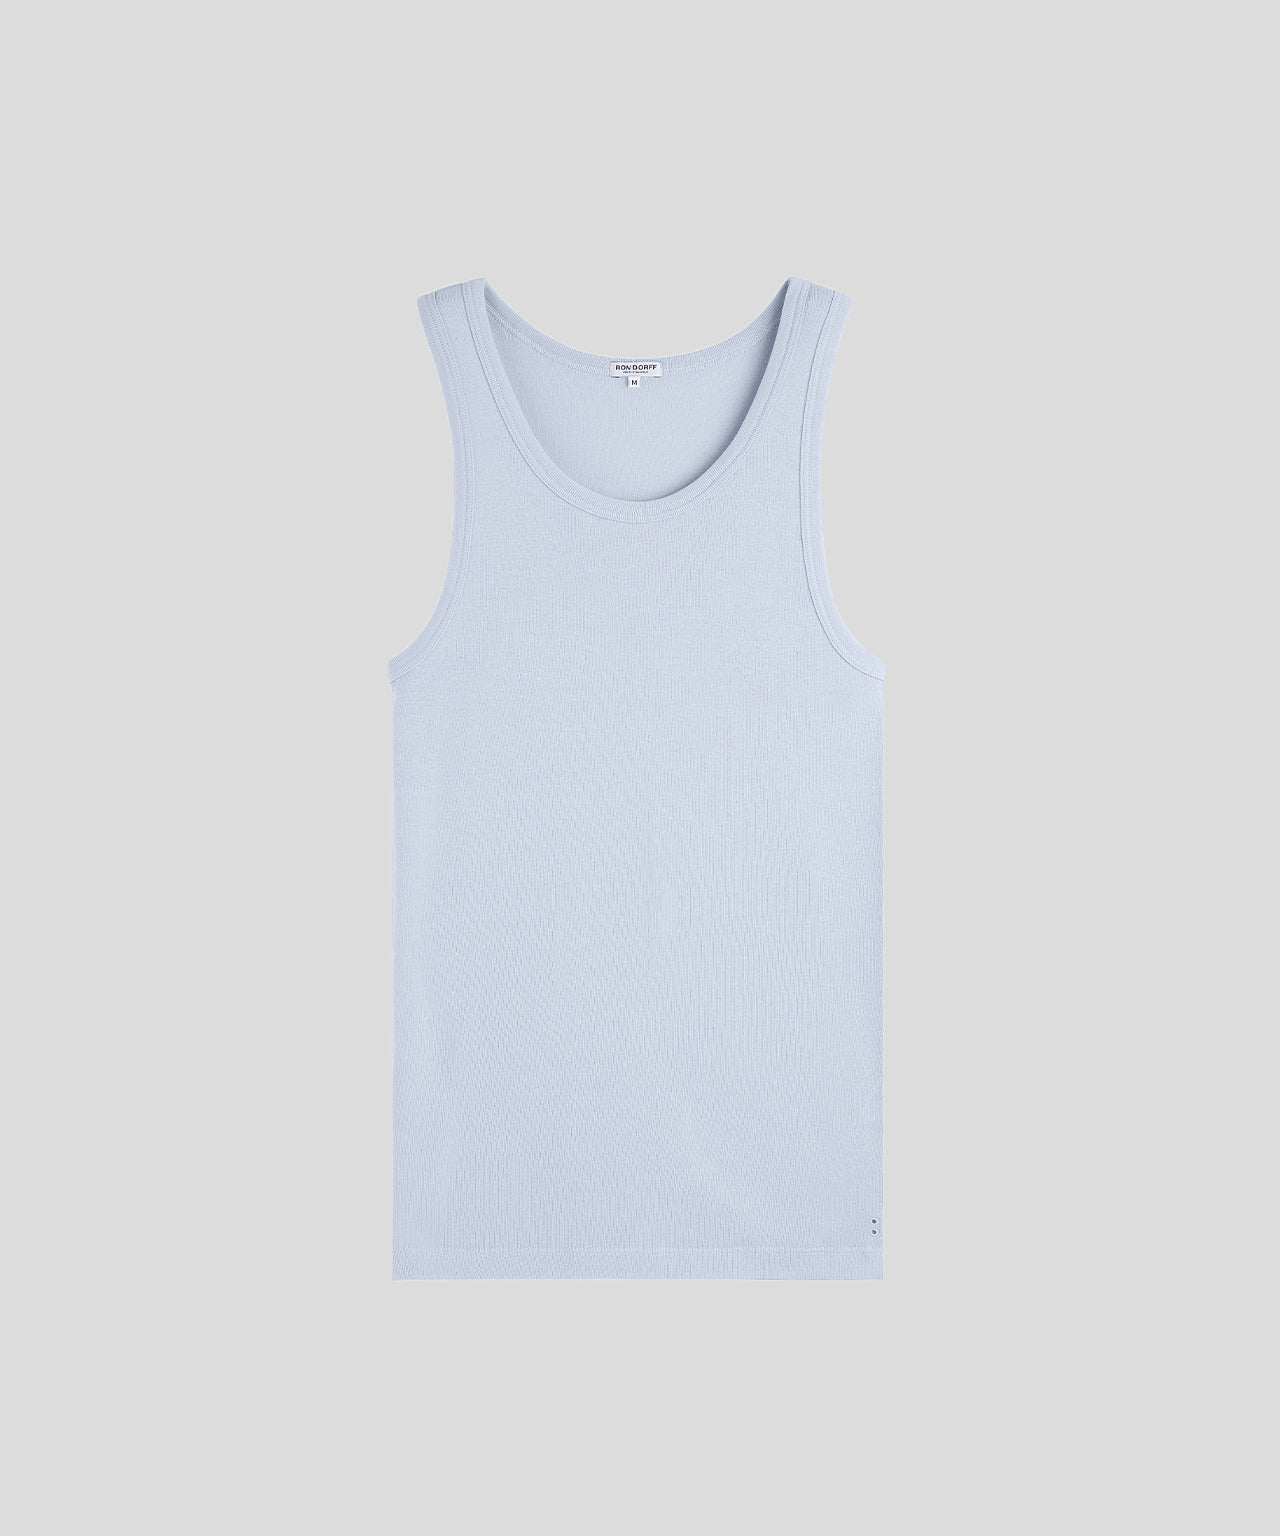 Underwear Tank Top - arctic blue